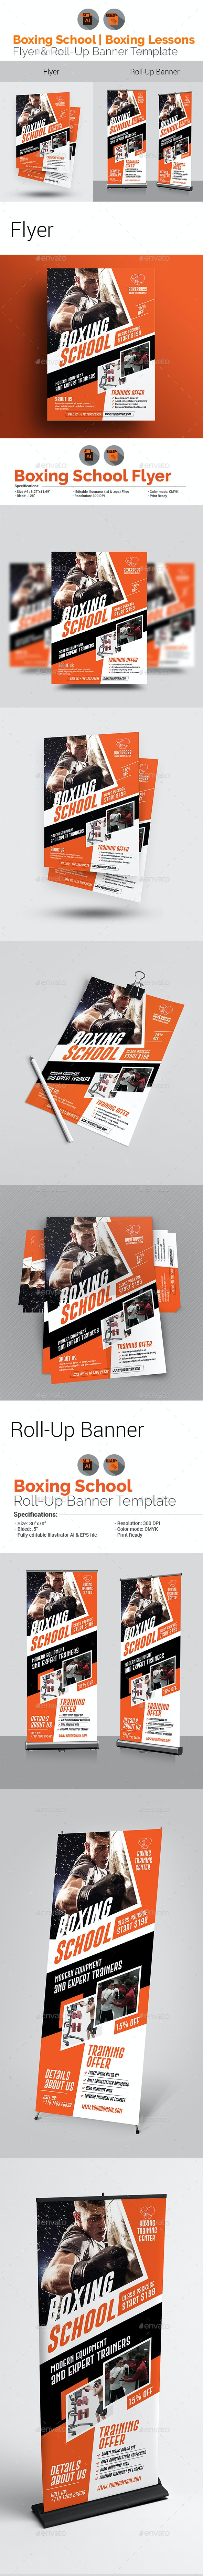 Boxing School Flyer with Rollup Bundle - Sports Events